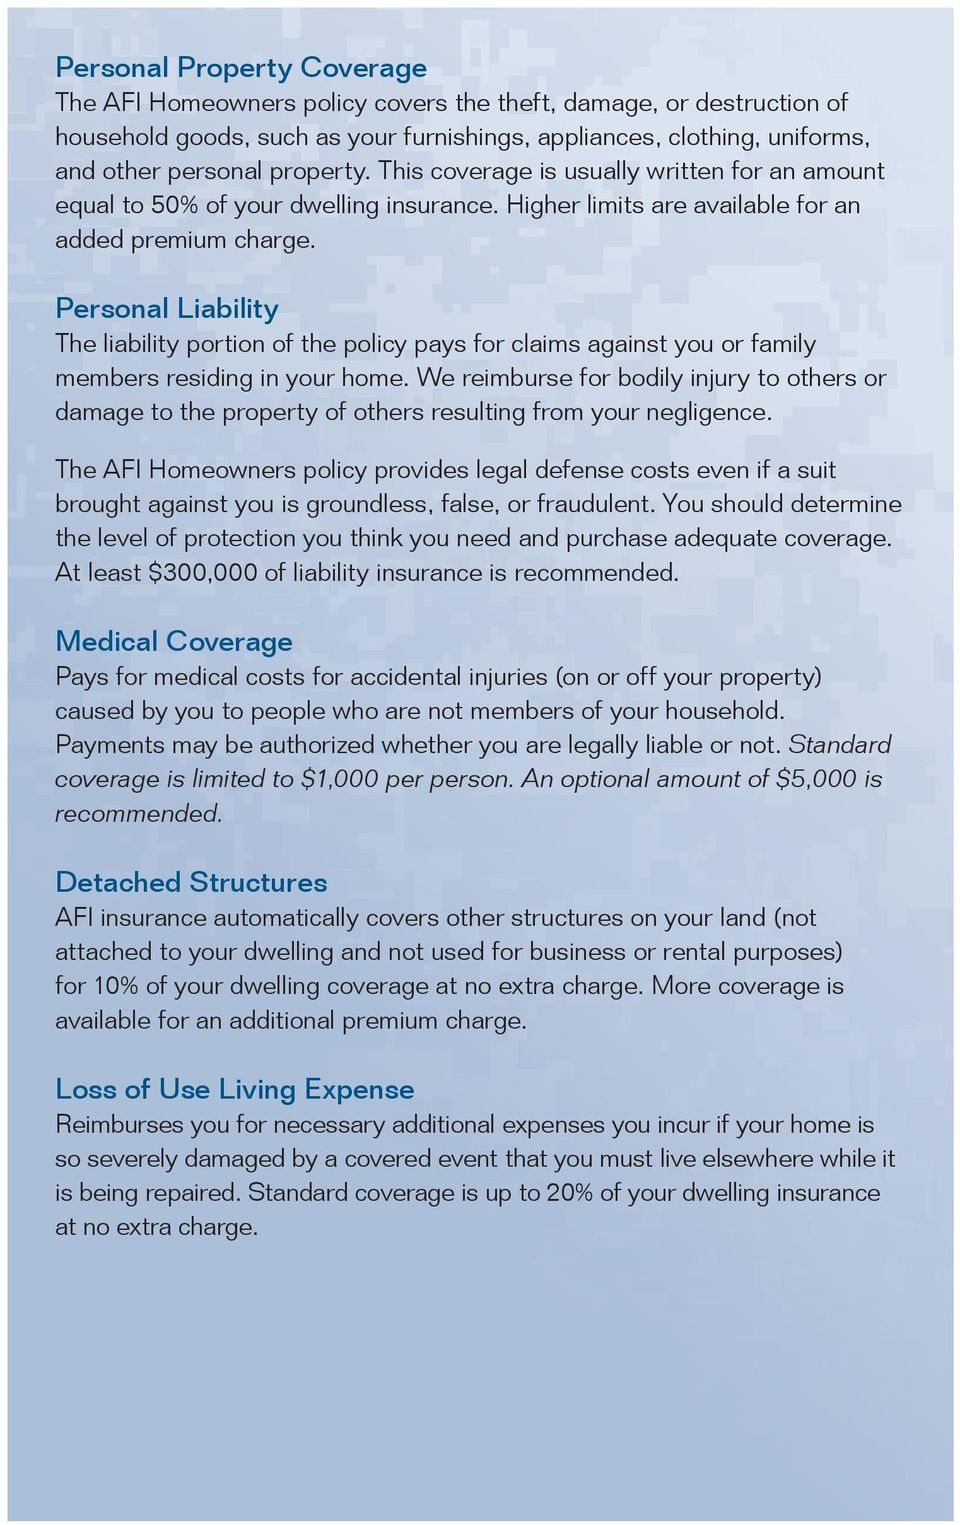 Personal Liability The liability portion of the policy pays for claims against you or family members residing in your home.